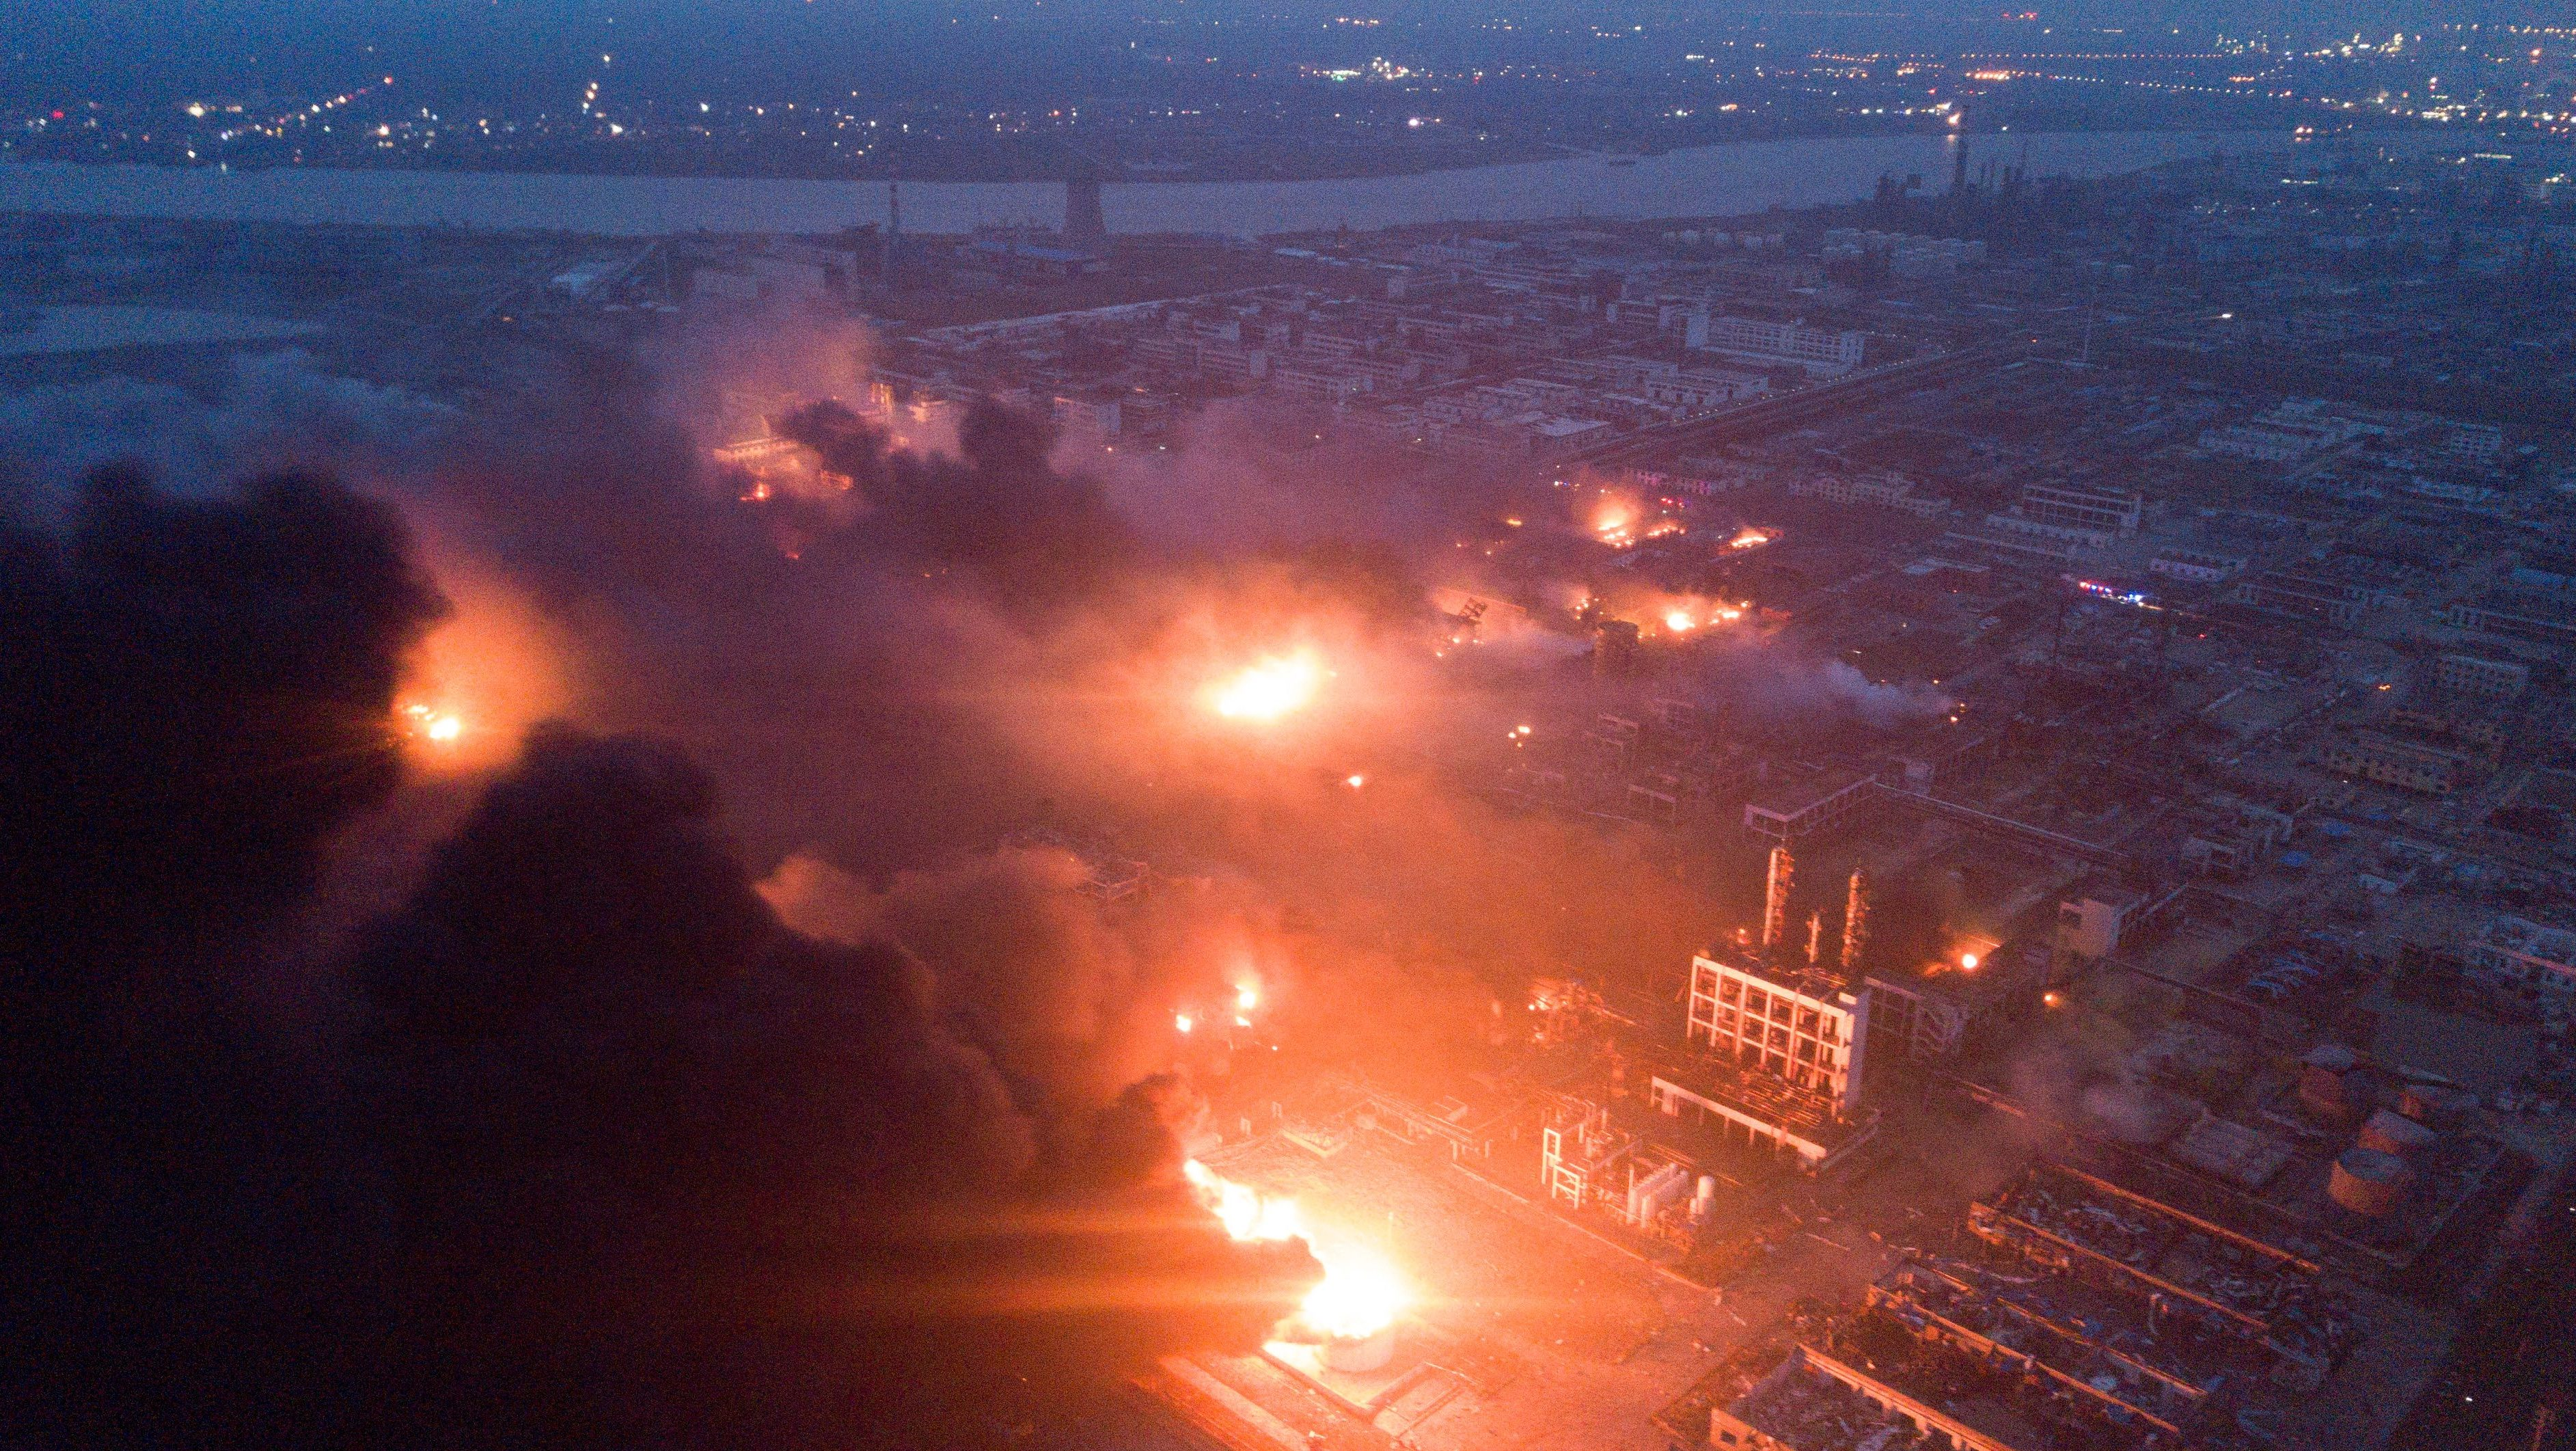 Smoke billows from fire following an explosion at the pesticide plant owned by Tianjiayi Chemical, in Xiangshui county, Yancheng, Jiangsu province, China March 21, 2019. Picture taken March 21, 2019.